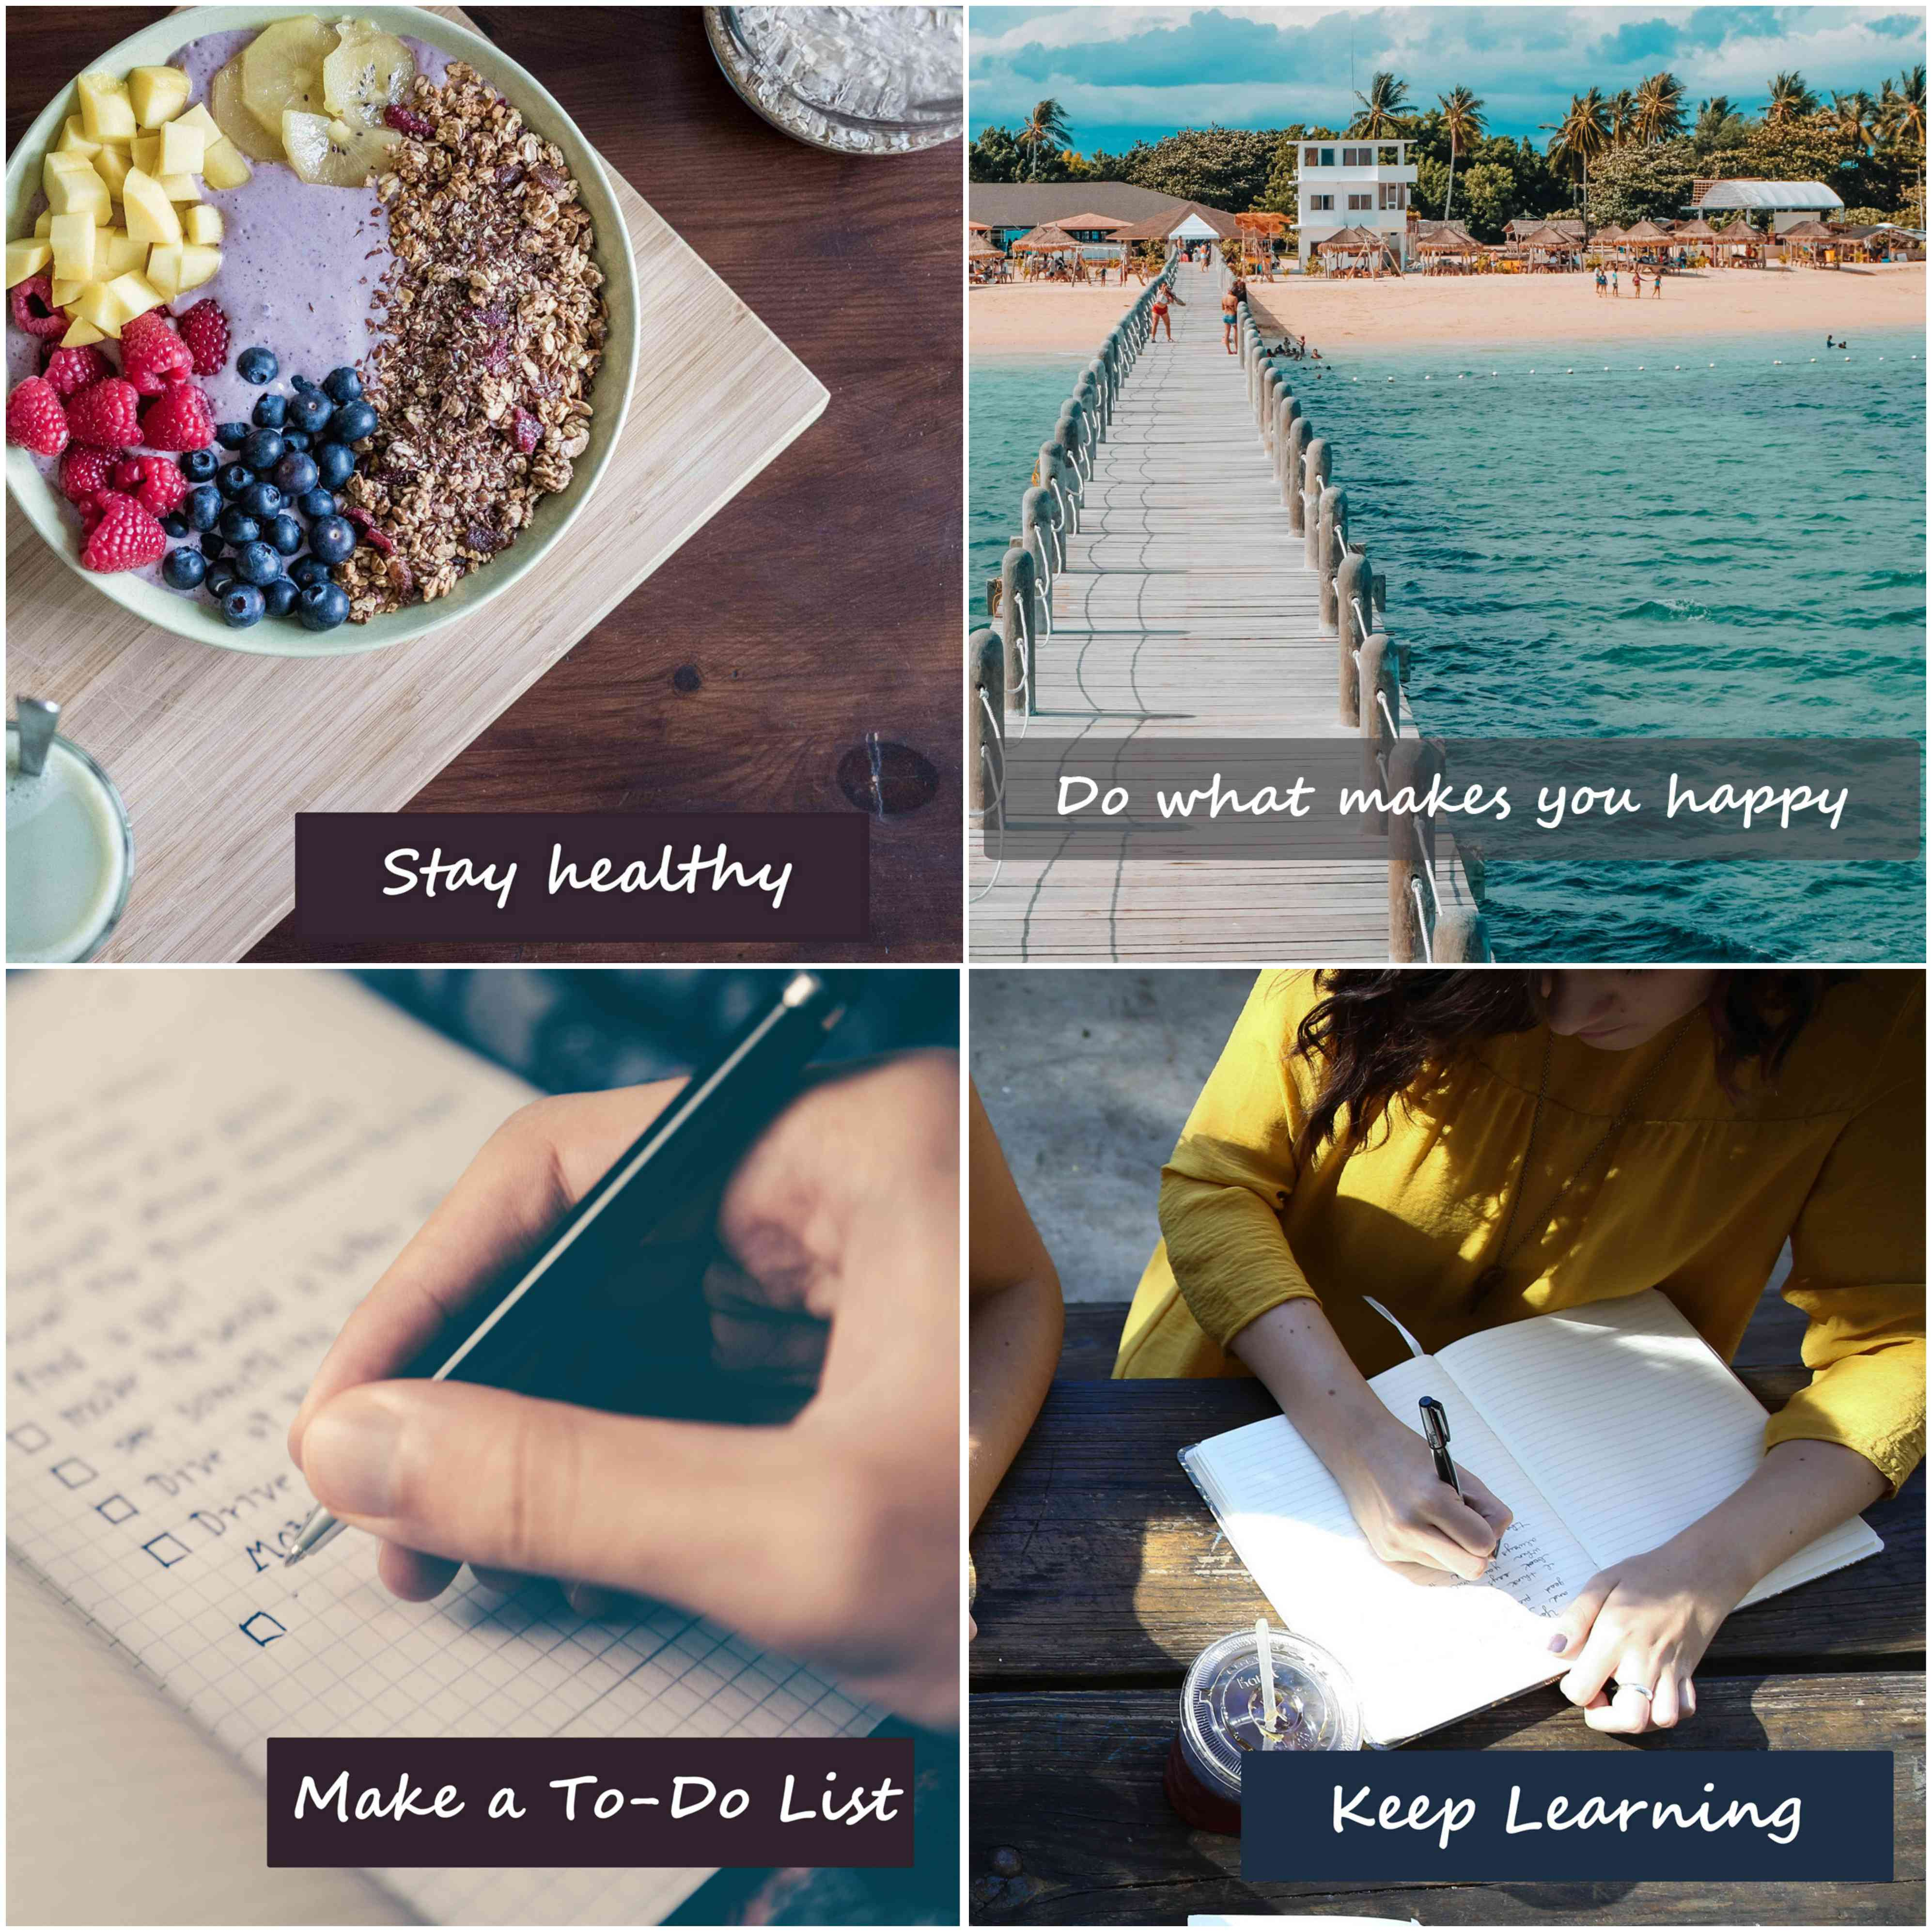 5 tips to stay inspired